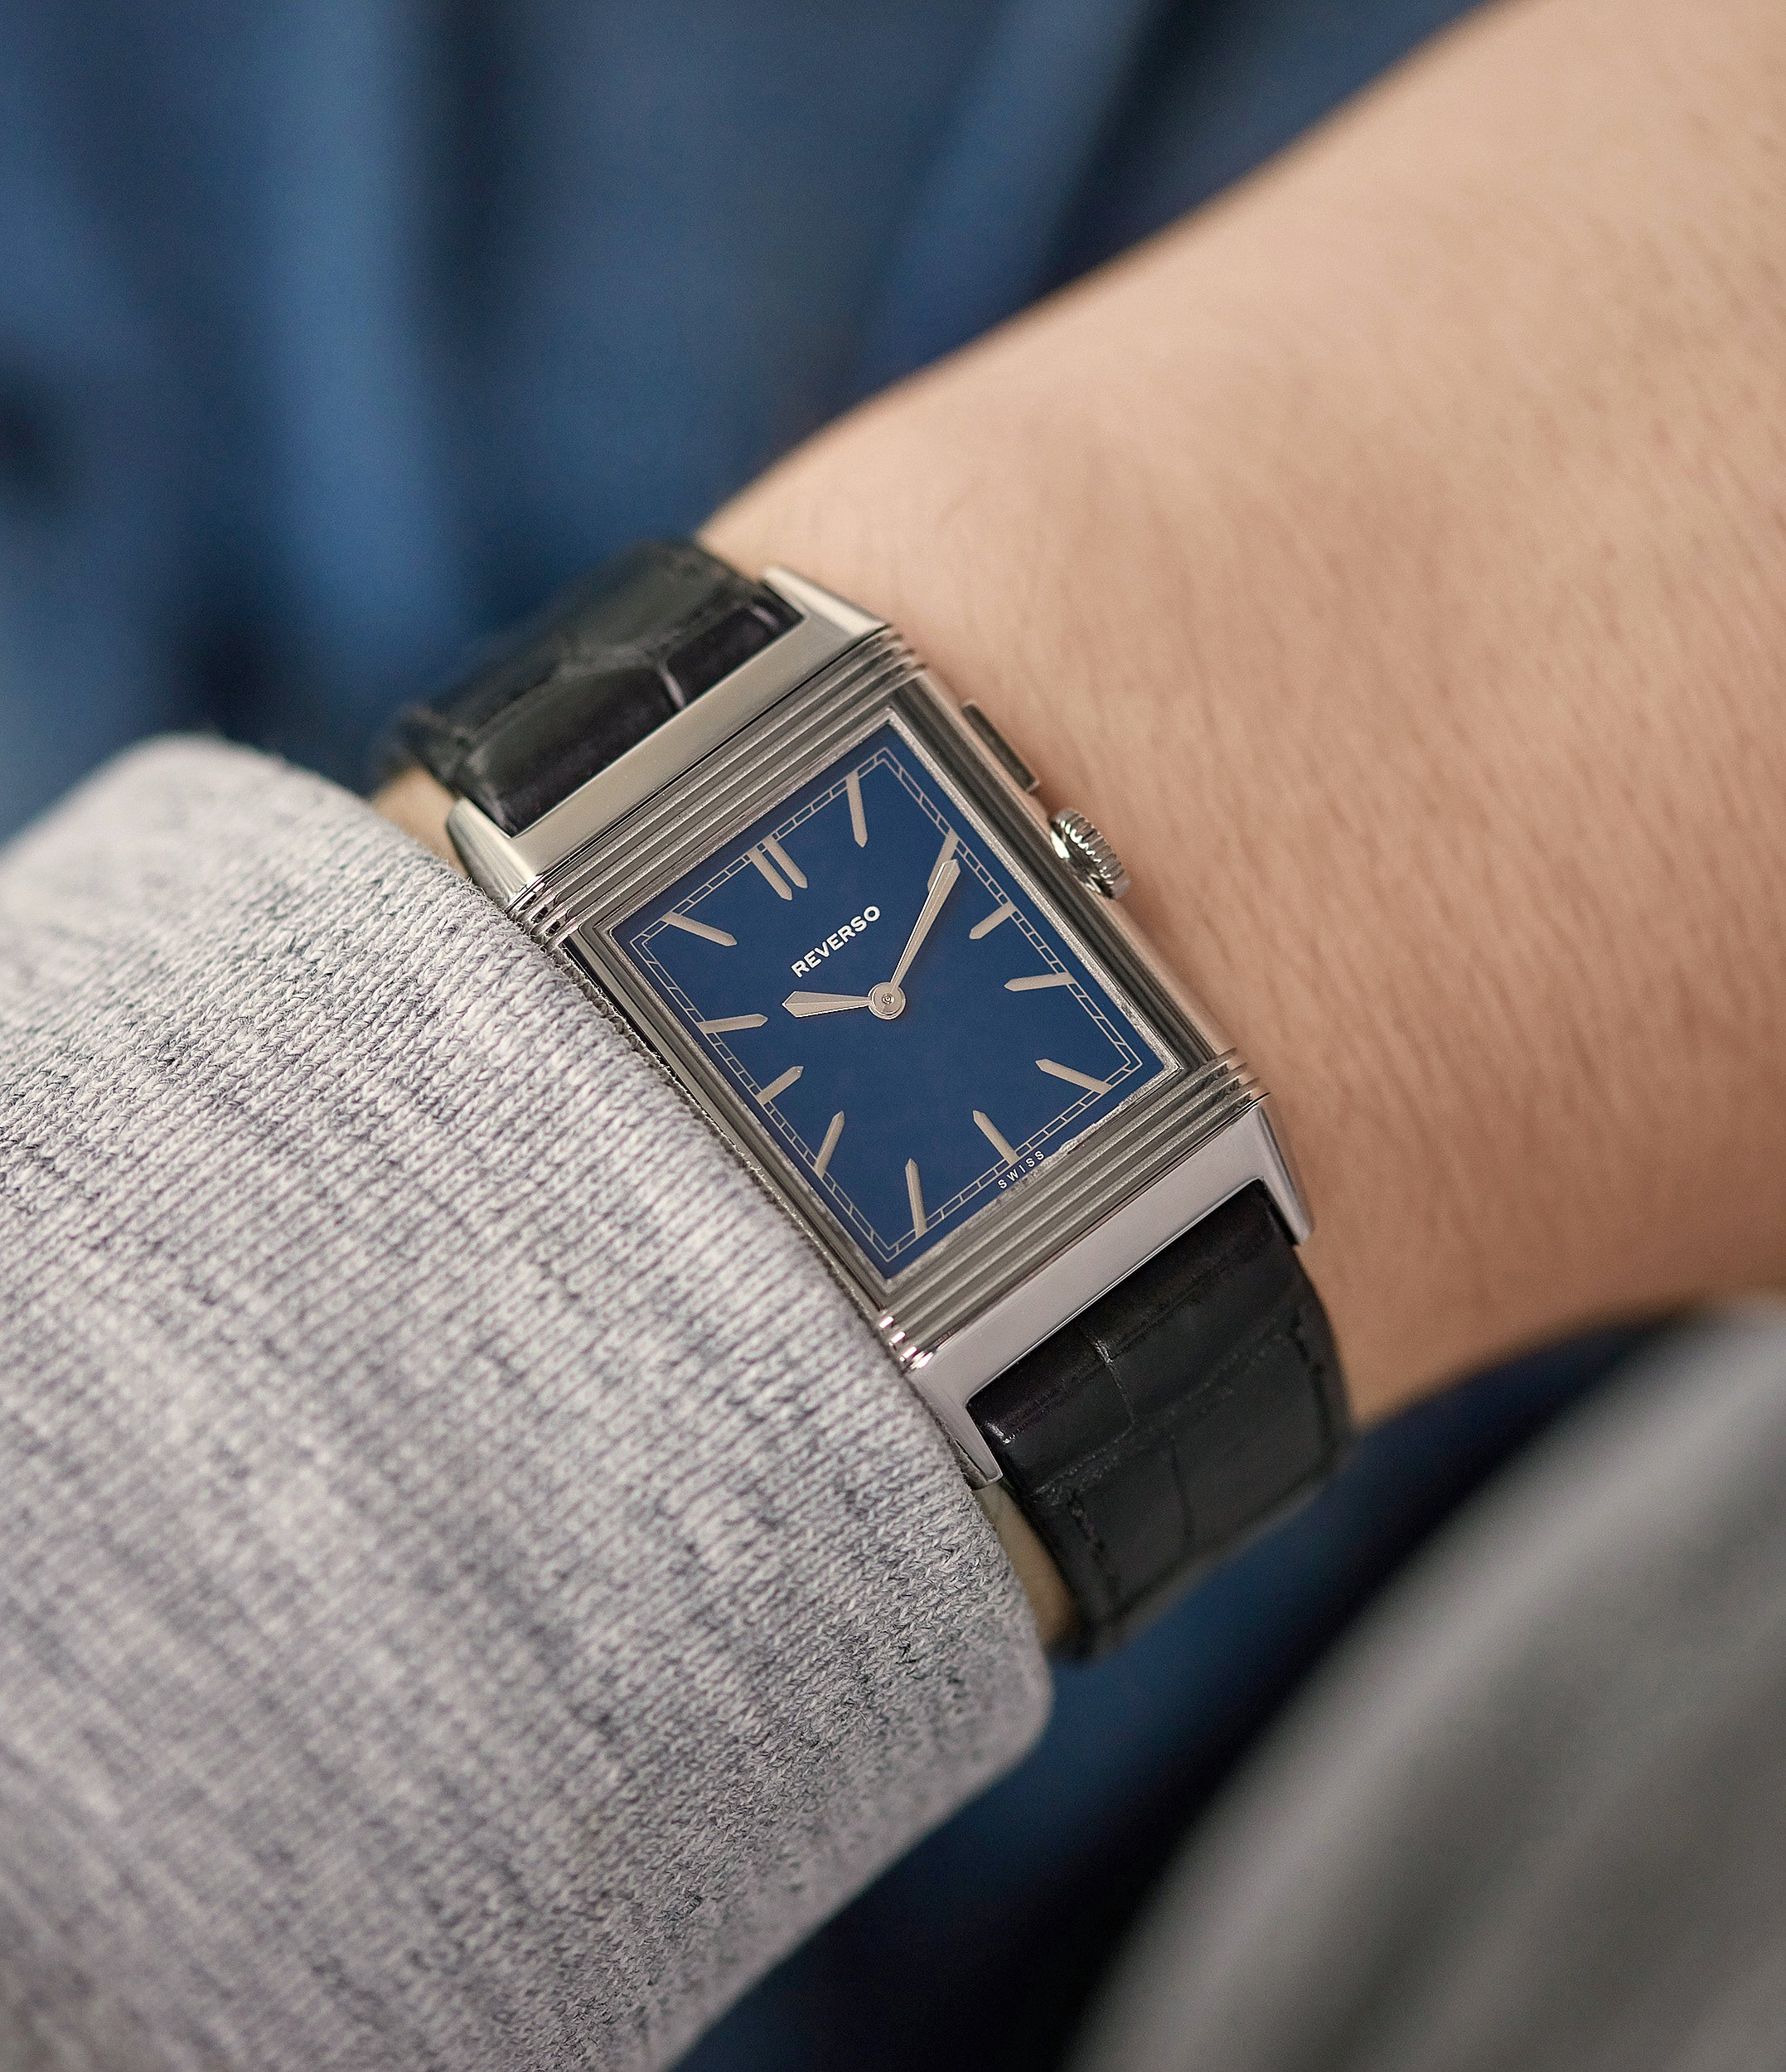 collect rare watch Jaeger-LeCoultre Boutique Edition Grand Reverso Duoface Blue Ultra-Thin 278.8.54 steel preowned traveller